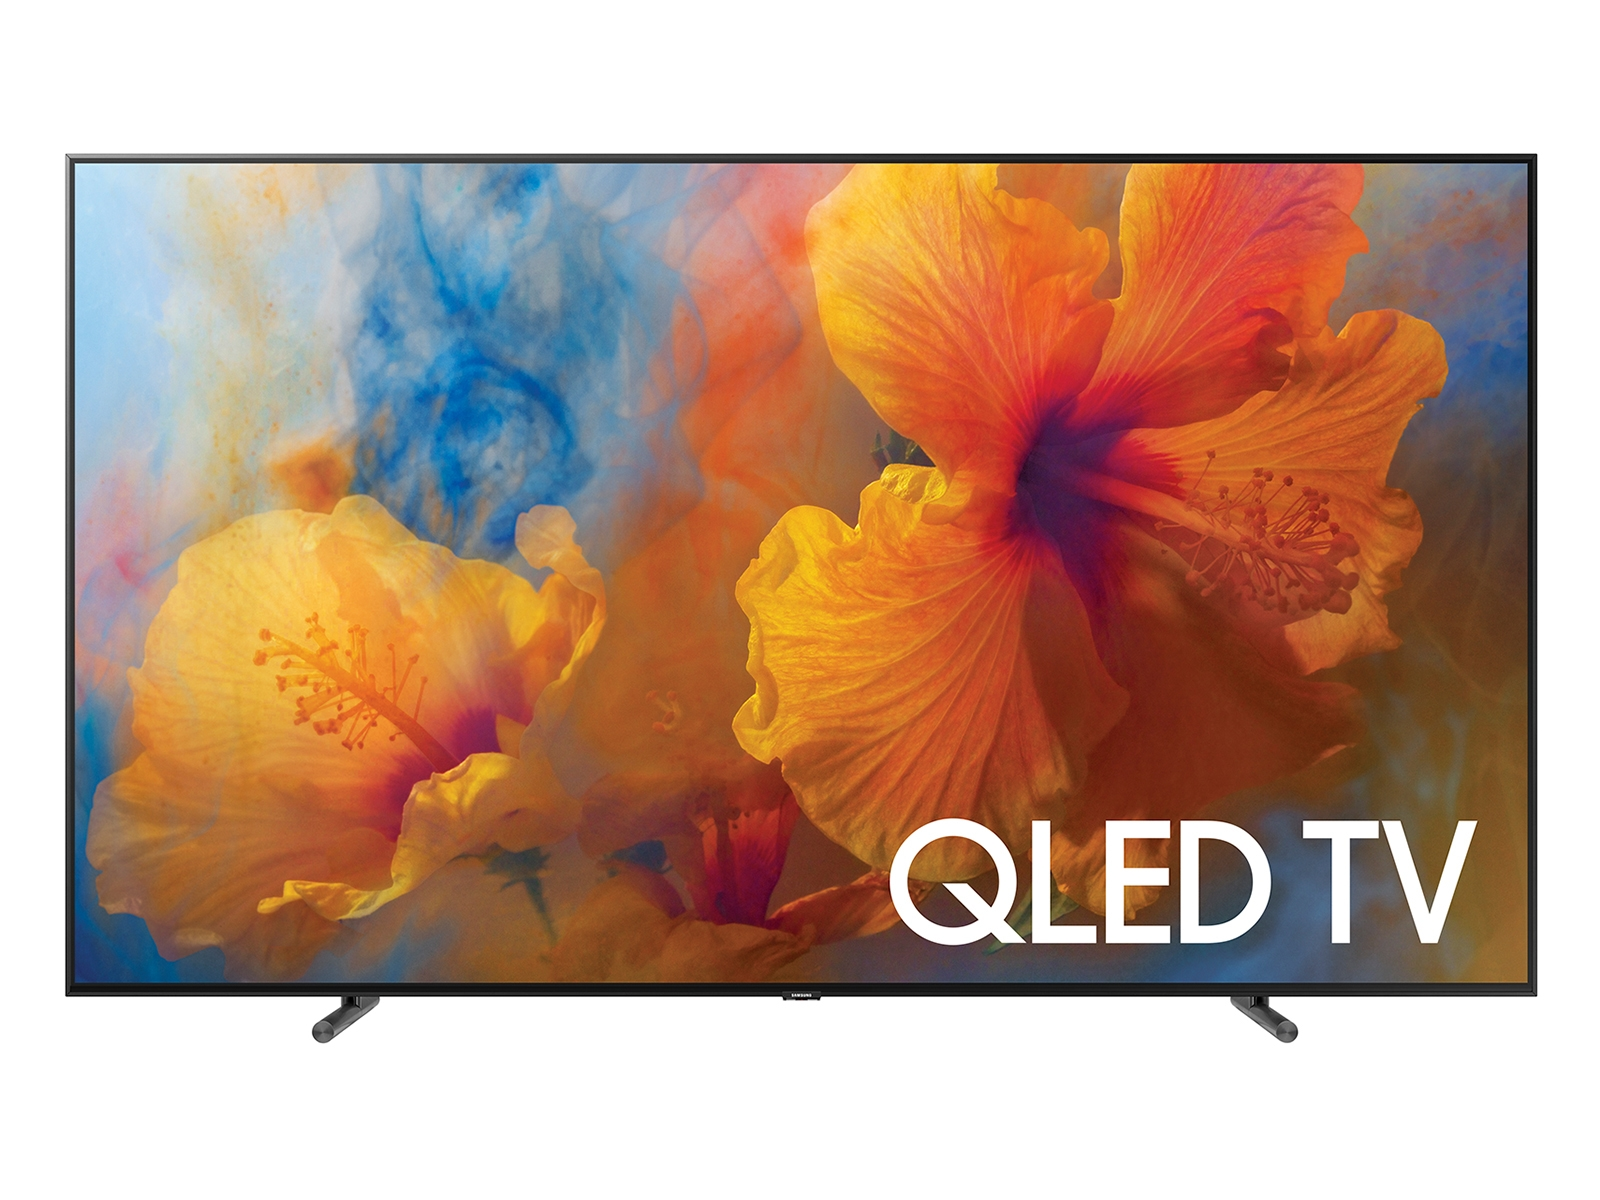 2017 Qled Tv Q9f Series Owner Information Support Samsung Us Verizon Cable Box Wiring Diagram